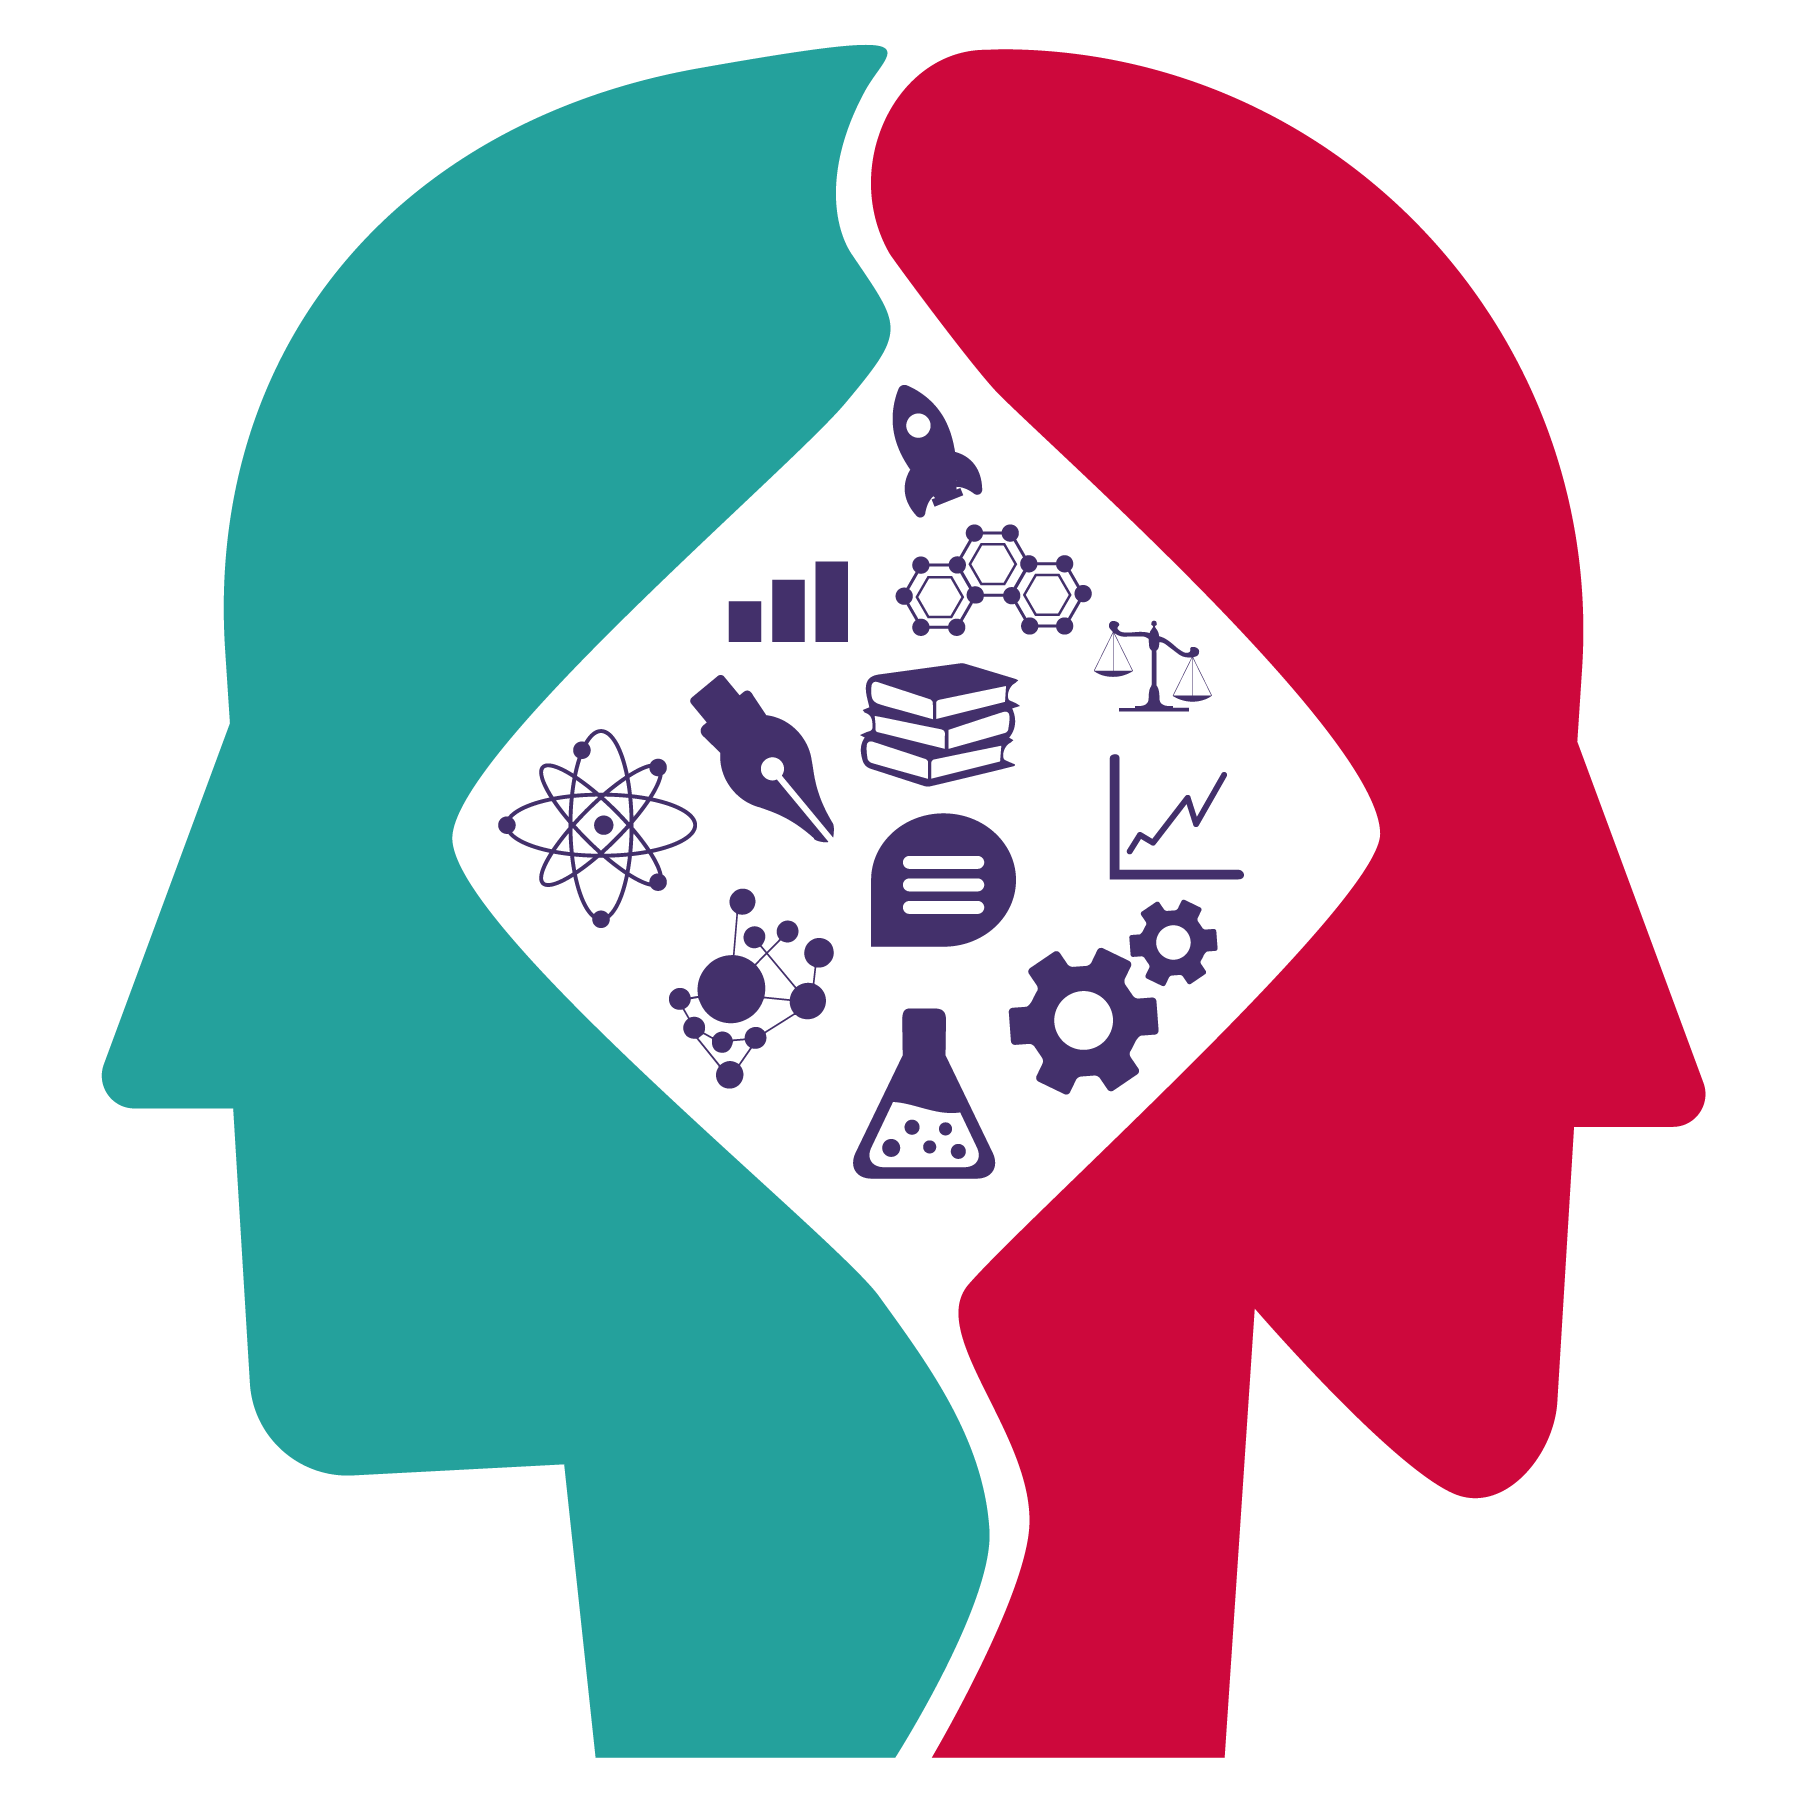 Two heads forming a whole, in the middle there are icons of speech bubbles, chemistry, pens, books, and others